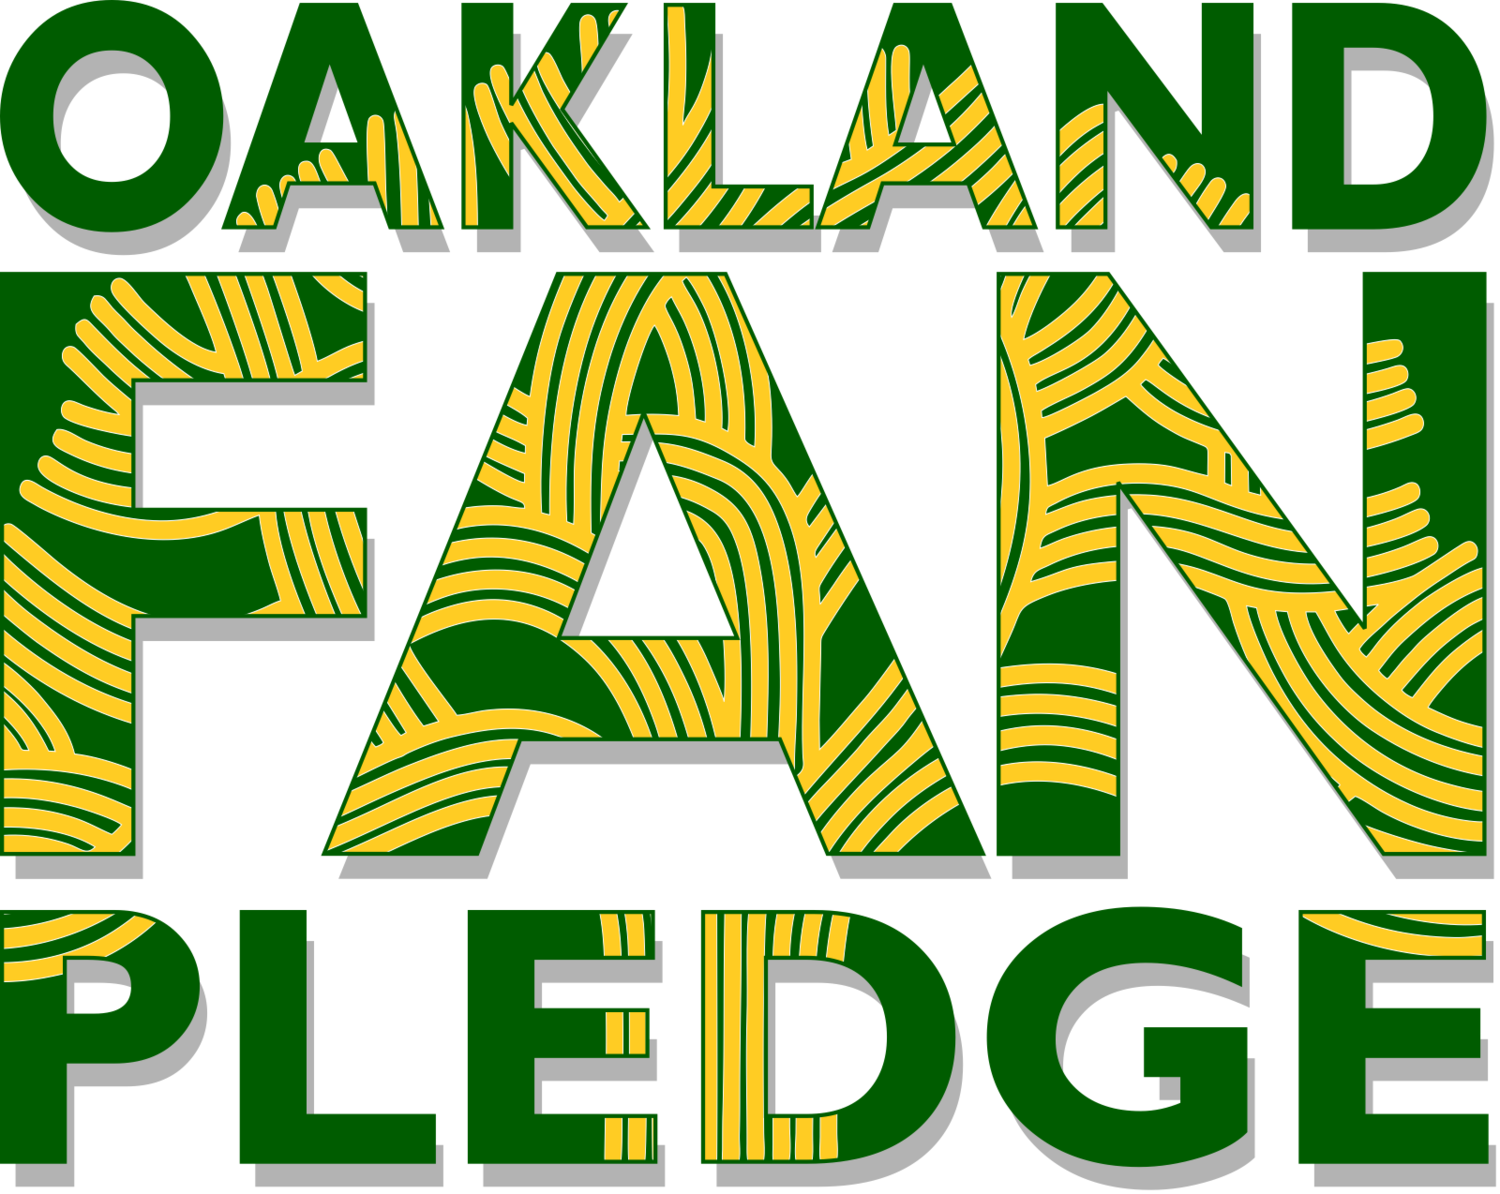 Oakland Fan Pledge